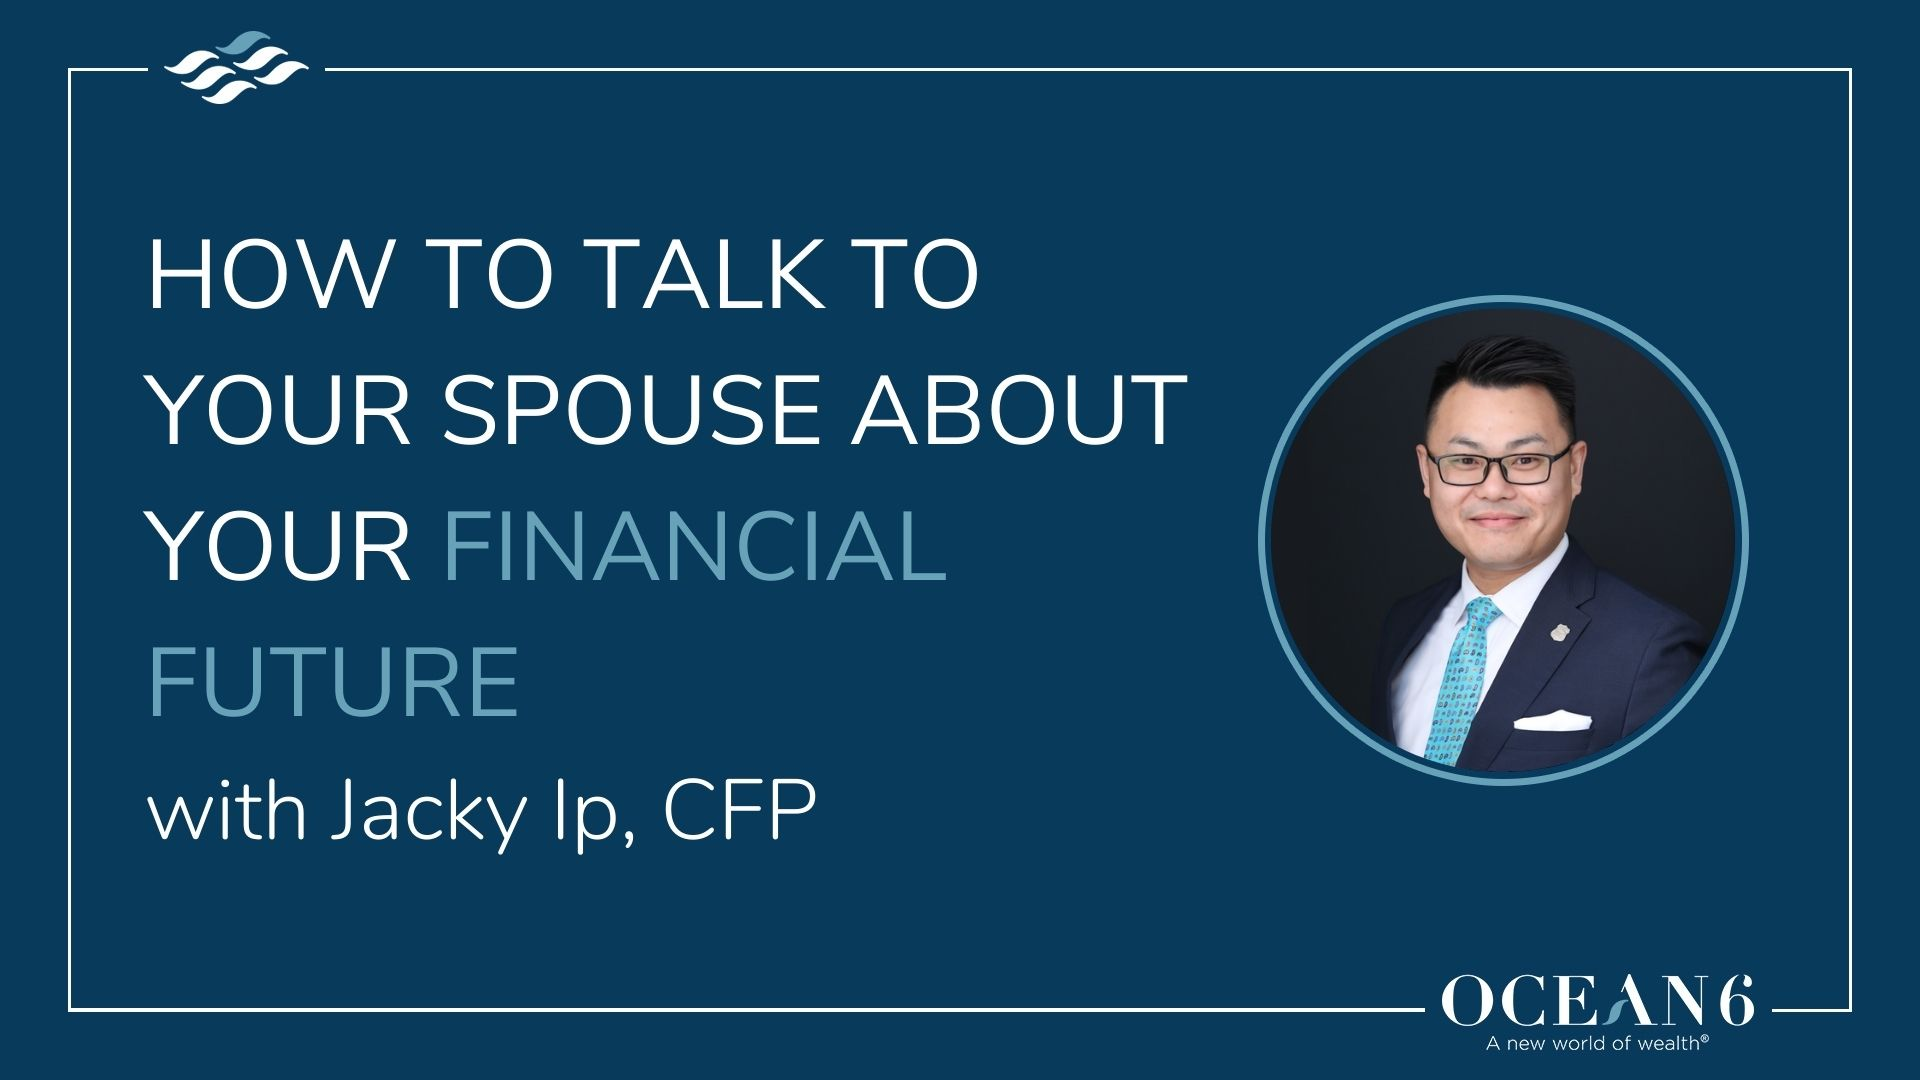 How to Talk to Your Spouse About Your Financial Future